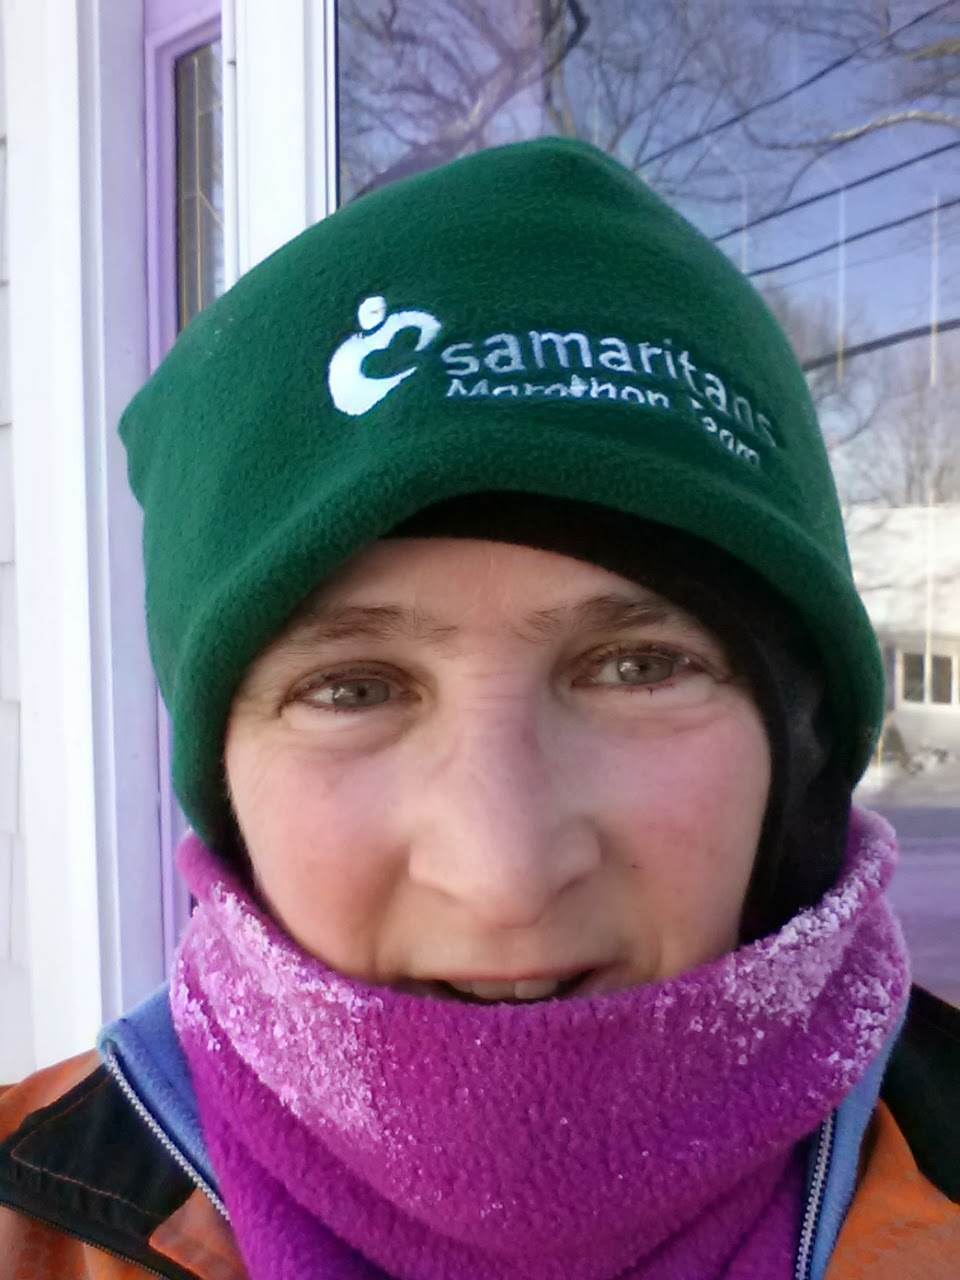 after 13 miles outdoors in temps from -2 to 8 with windchill